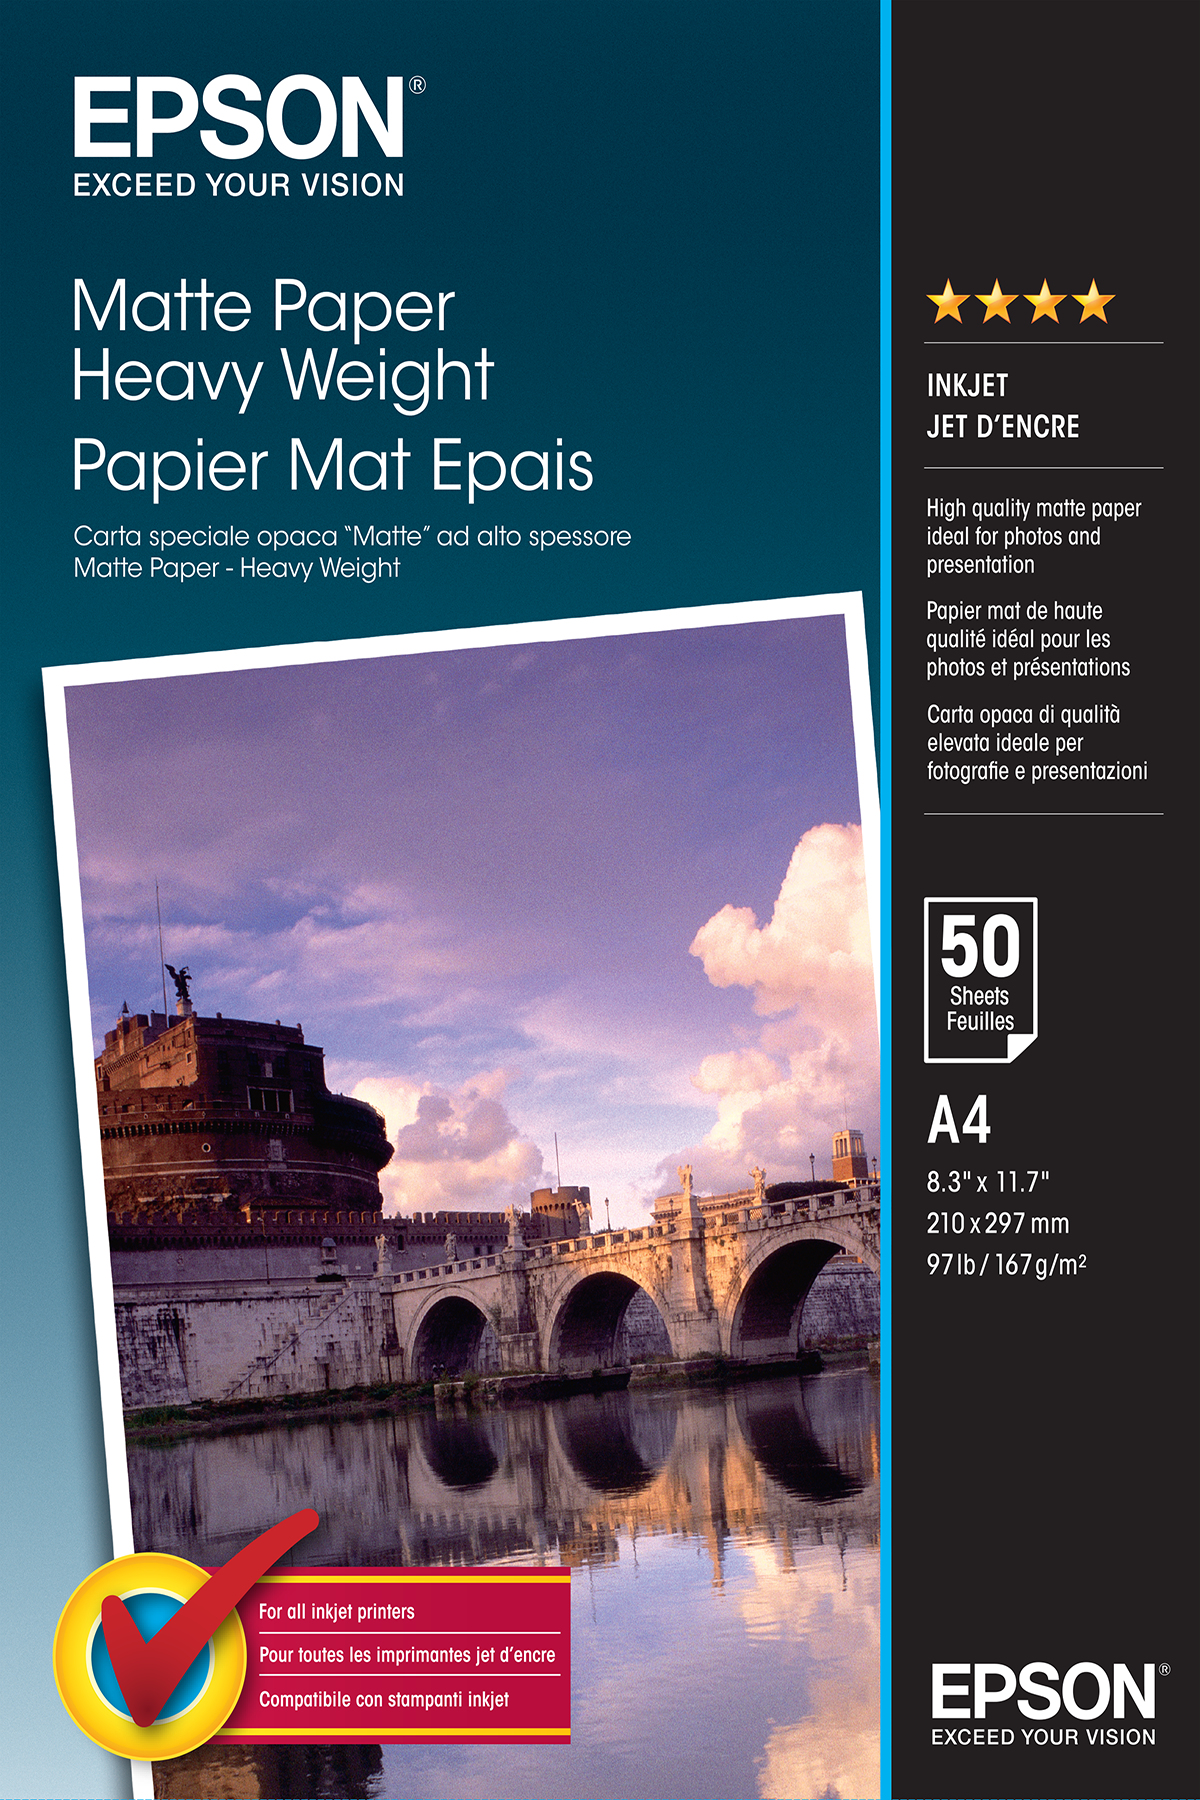 Heavyweight Matte Paper A4 C13s041256 - WC01